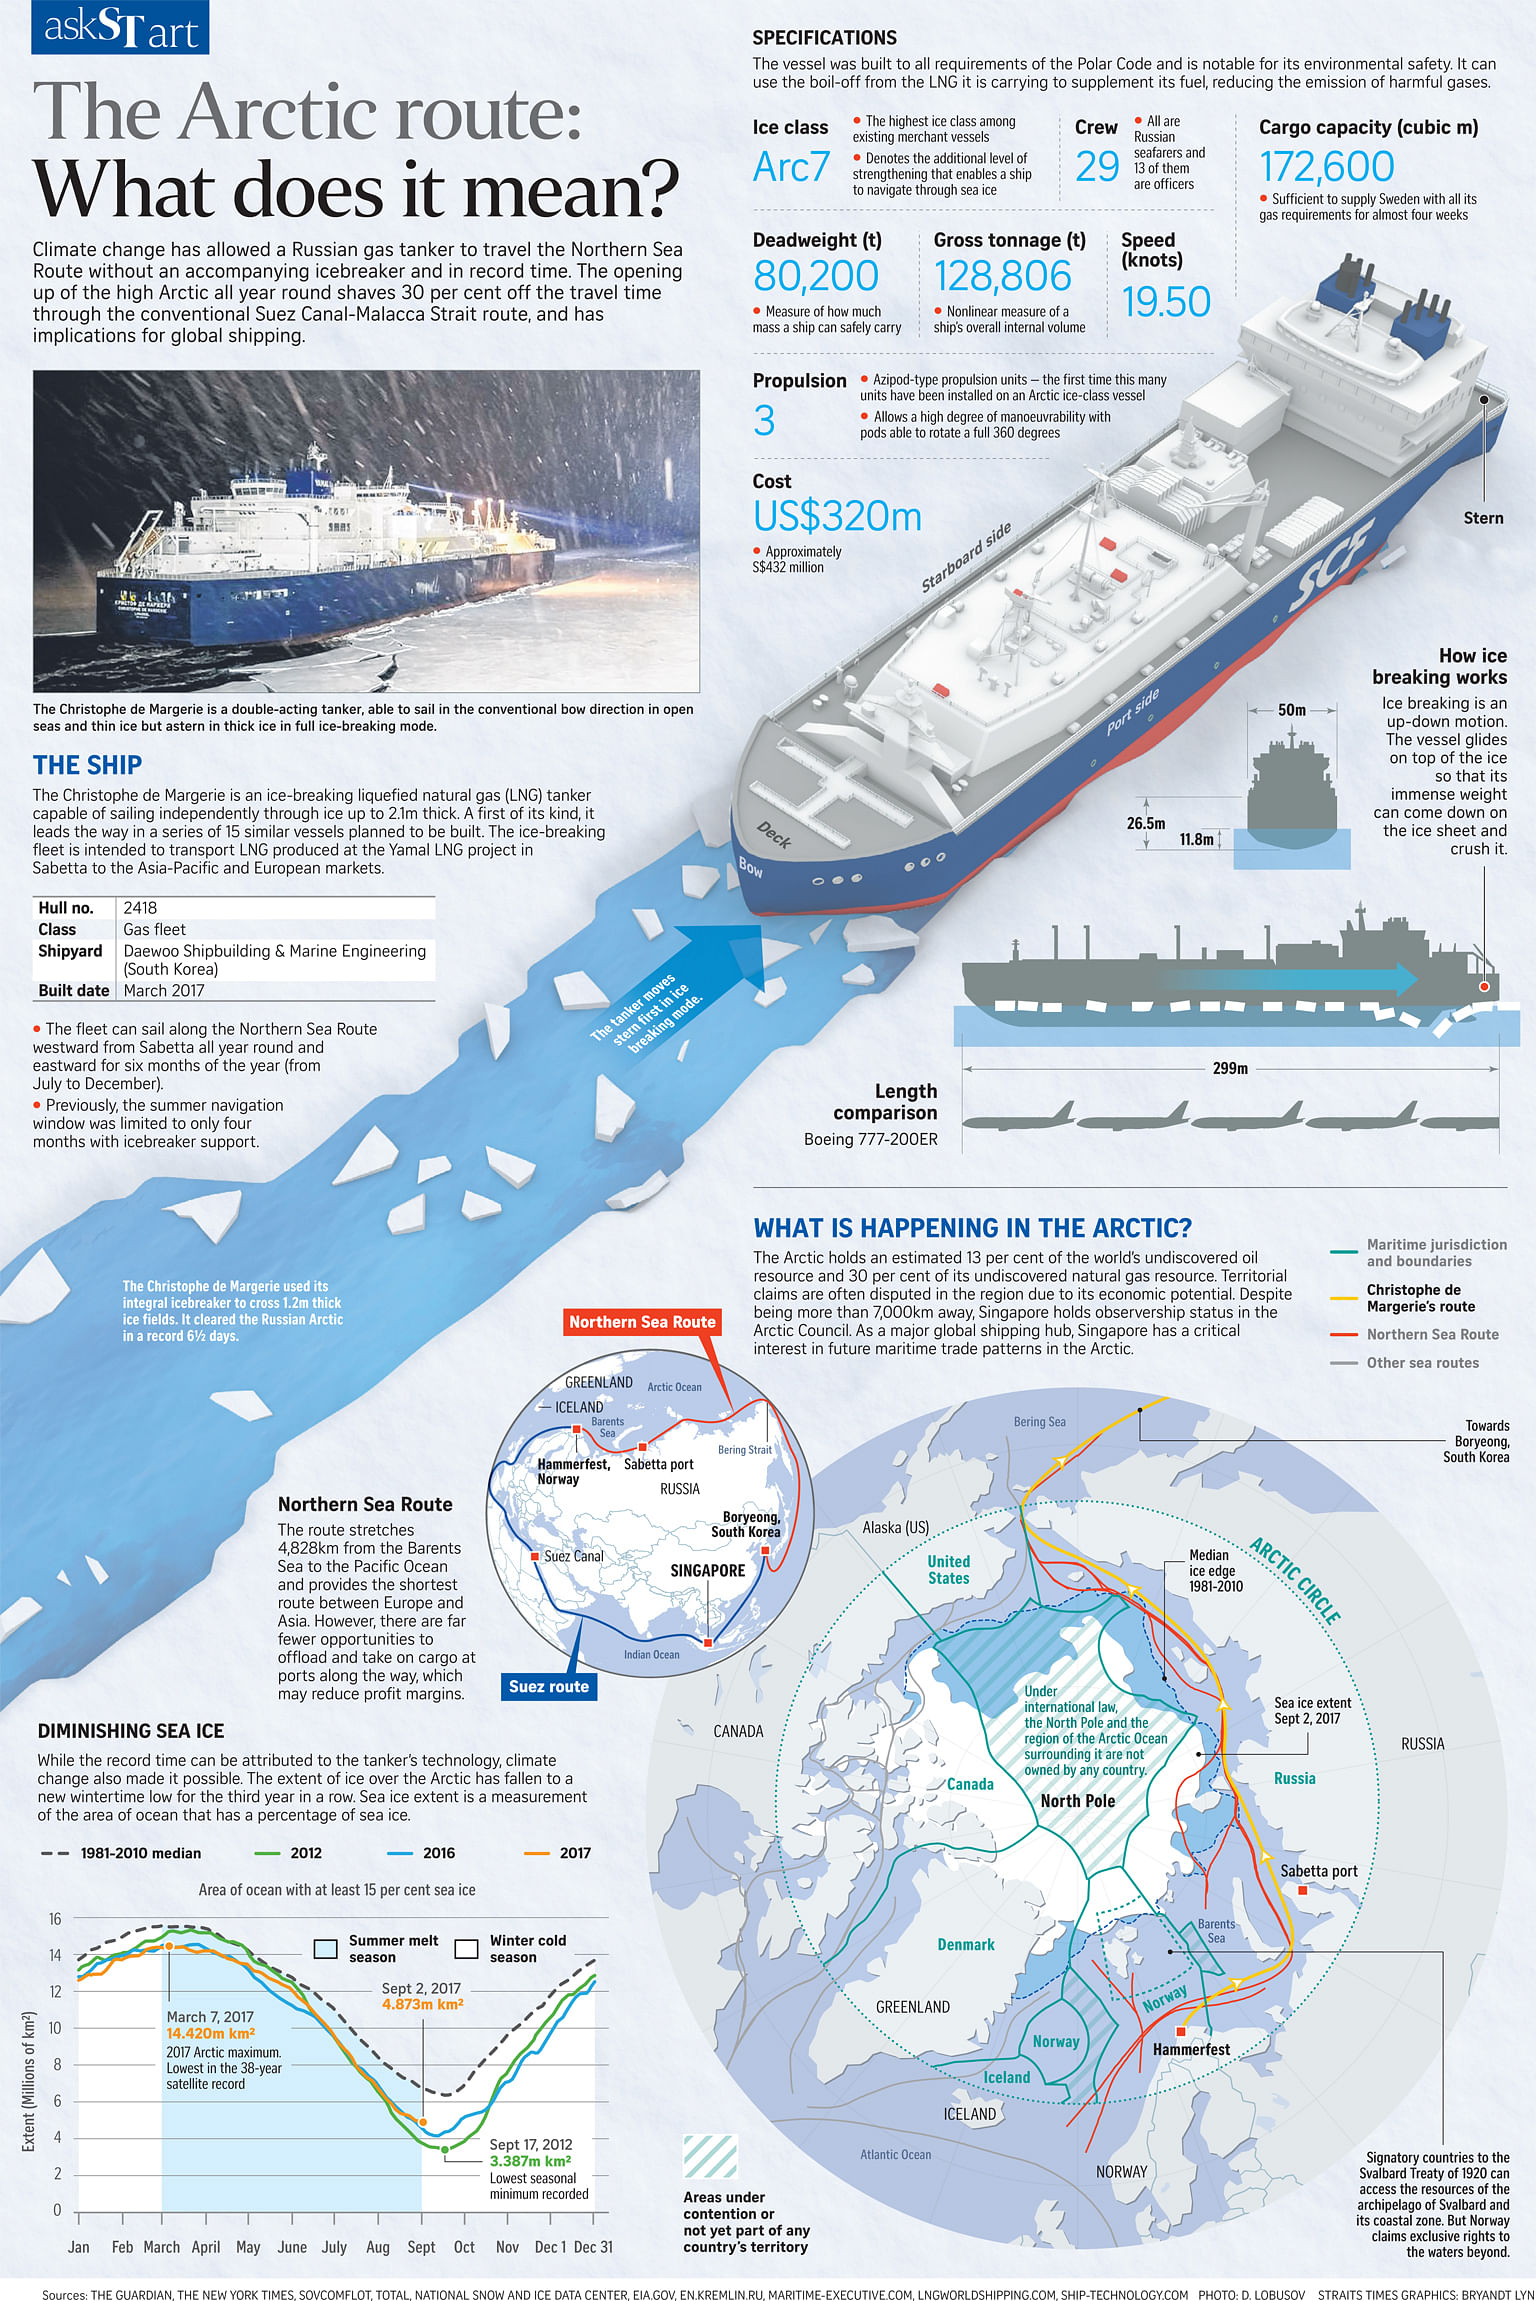 the arctic route: what does it mean?, singapore news & top stories